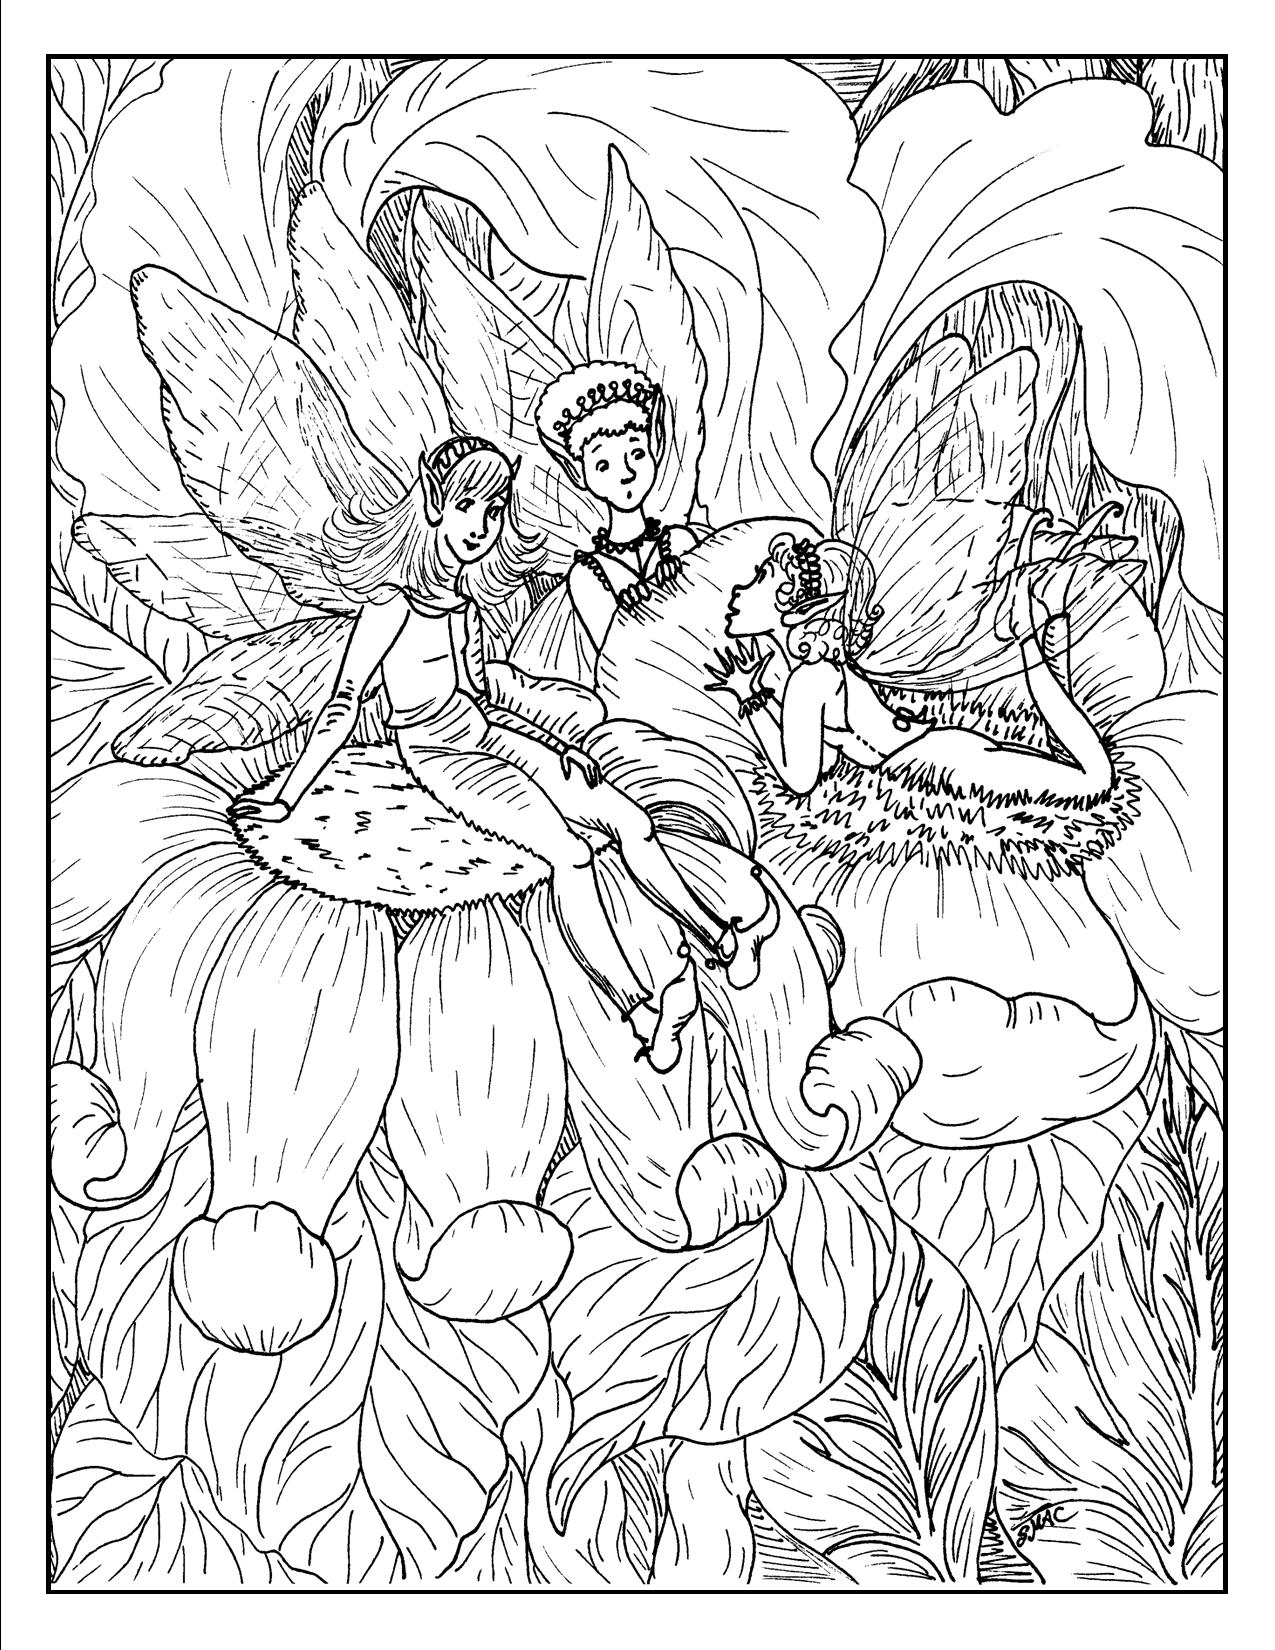 fancy coloring pages fantasy coloring books adultcoloringbookz pages fancy coloring